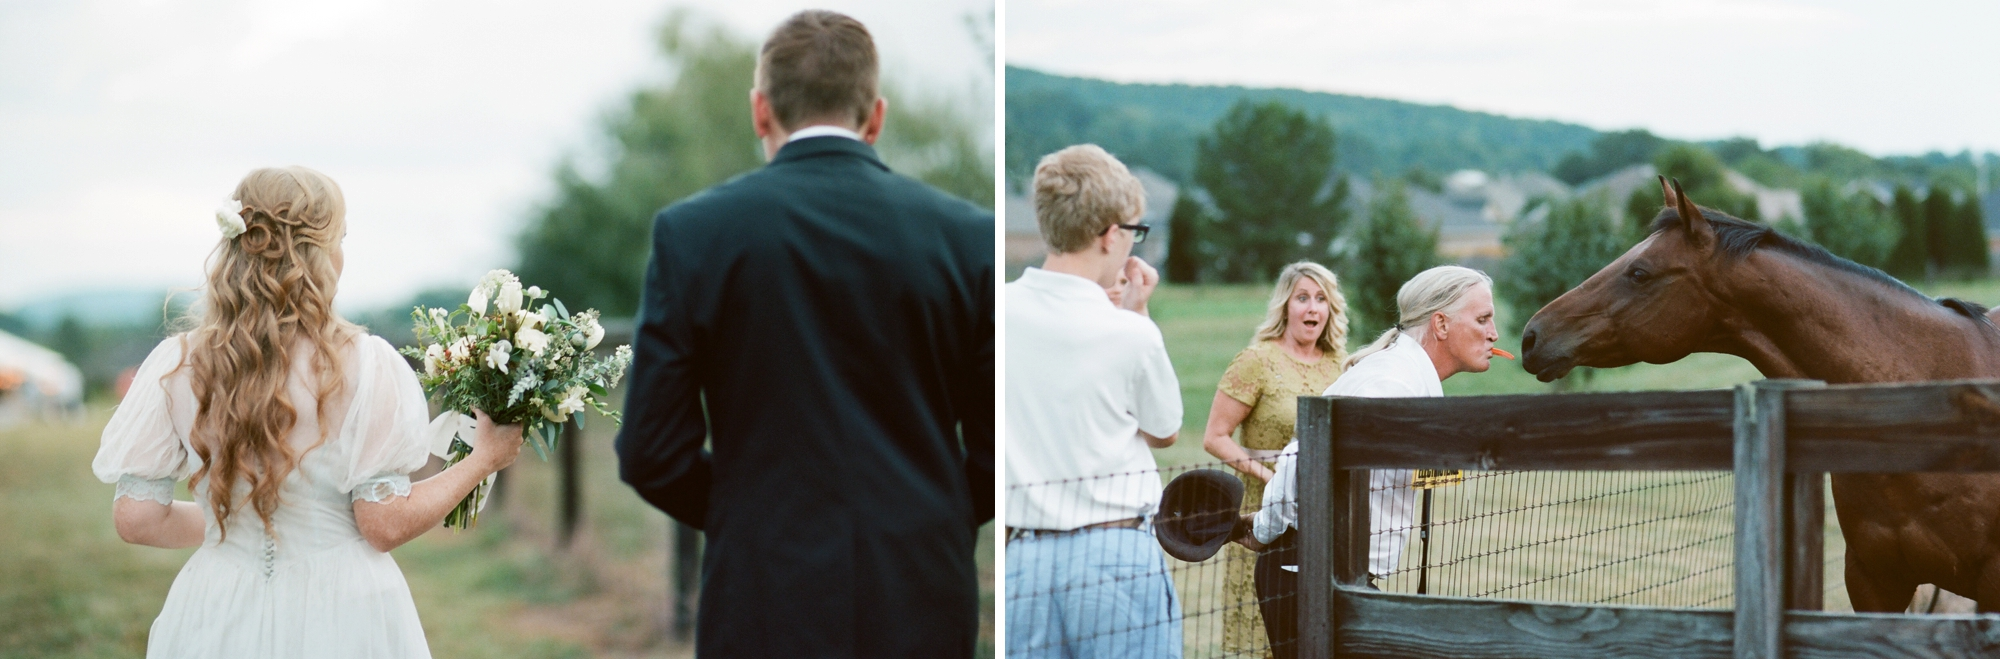 alabama-film-wedding-photographer_0039